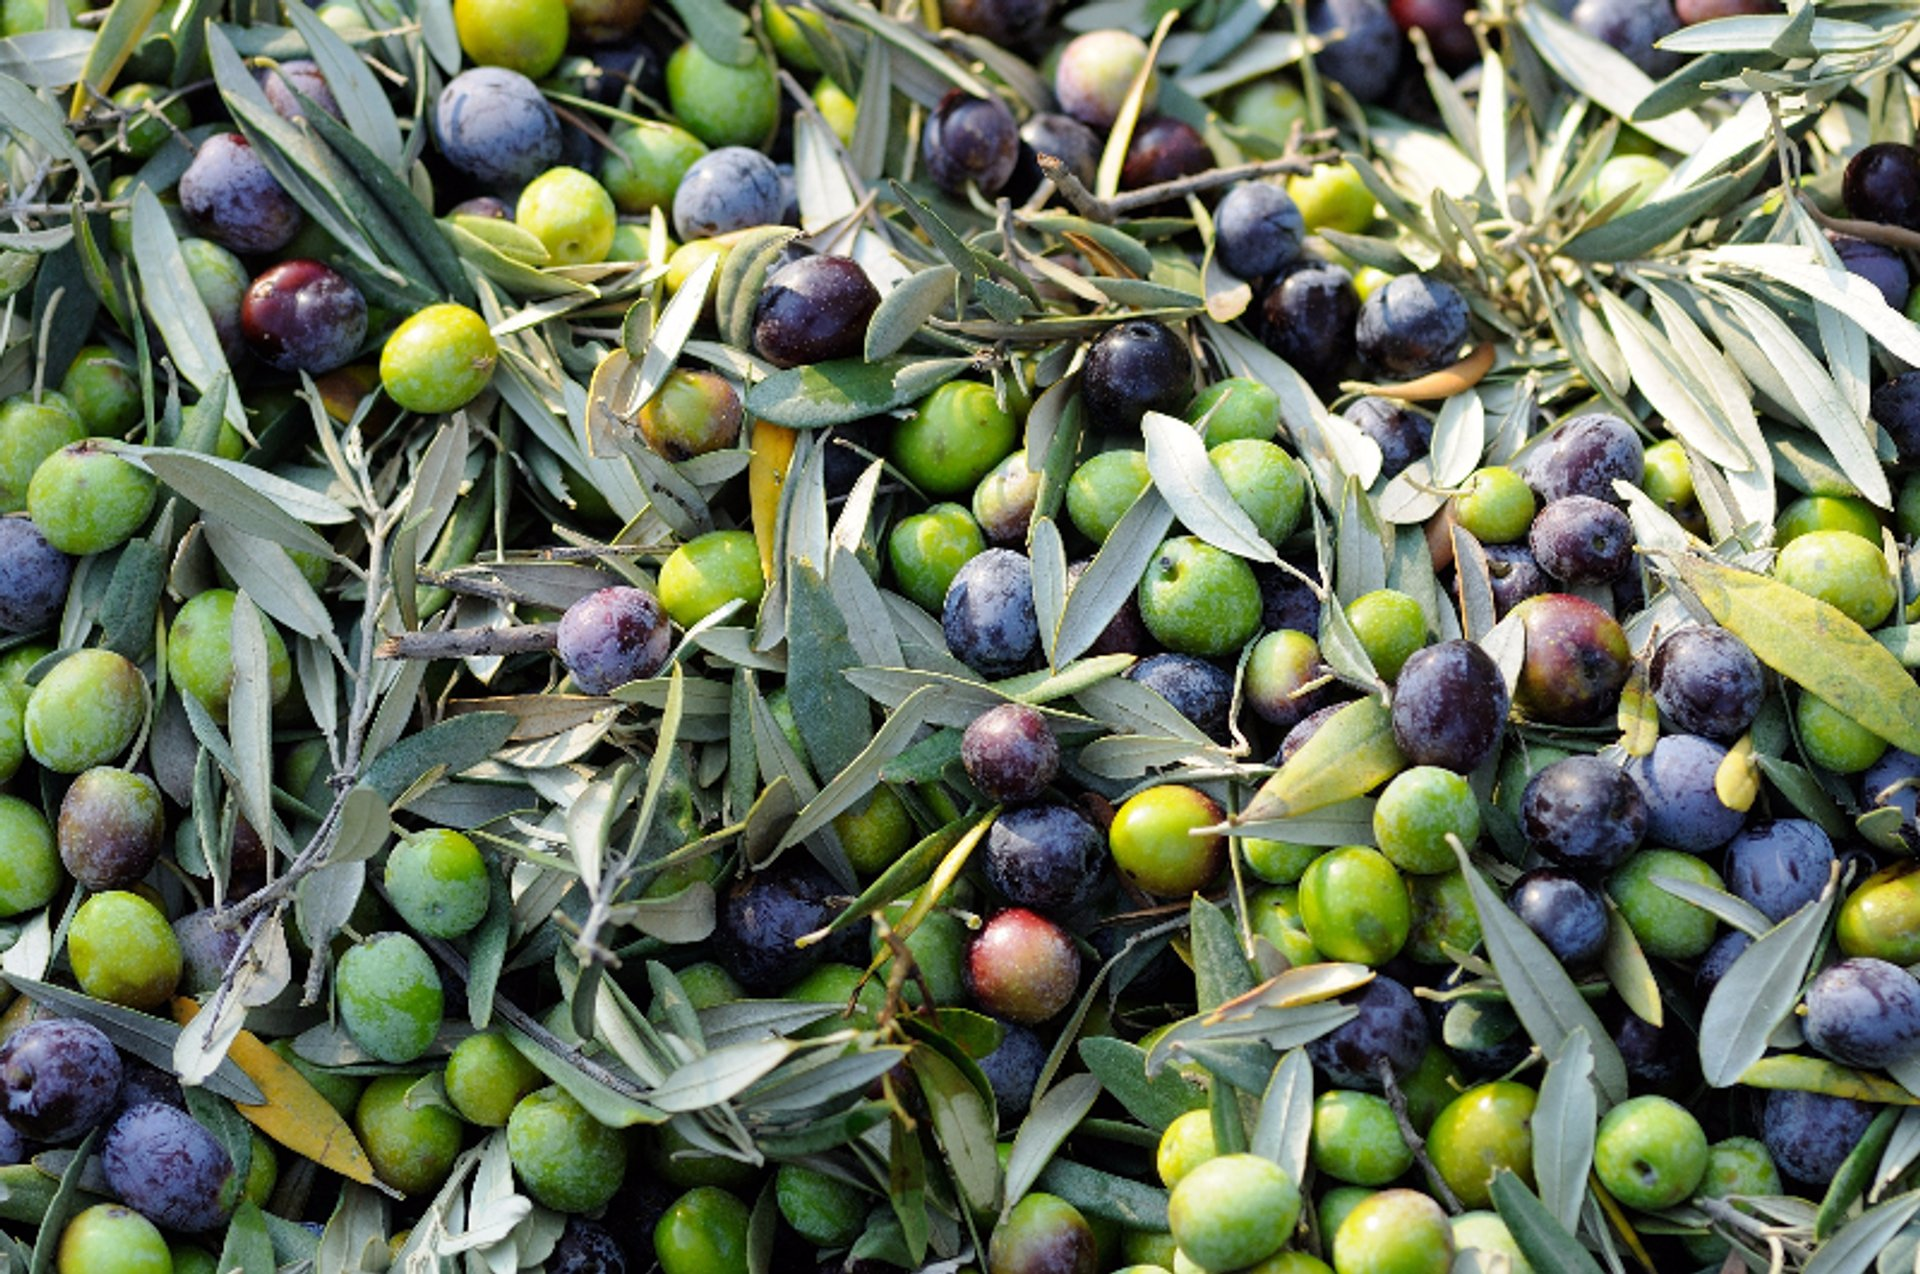 Olive Harvest in Crete 2019 - Best Time